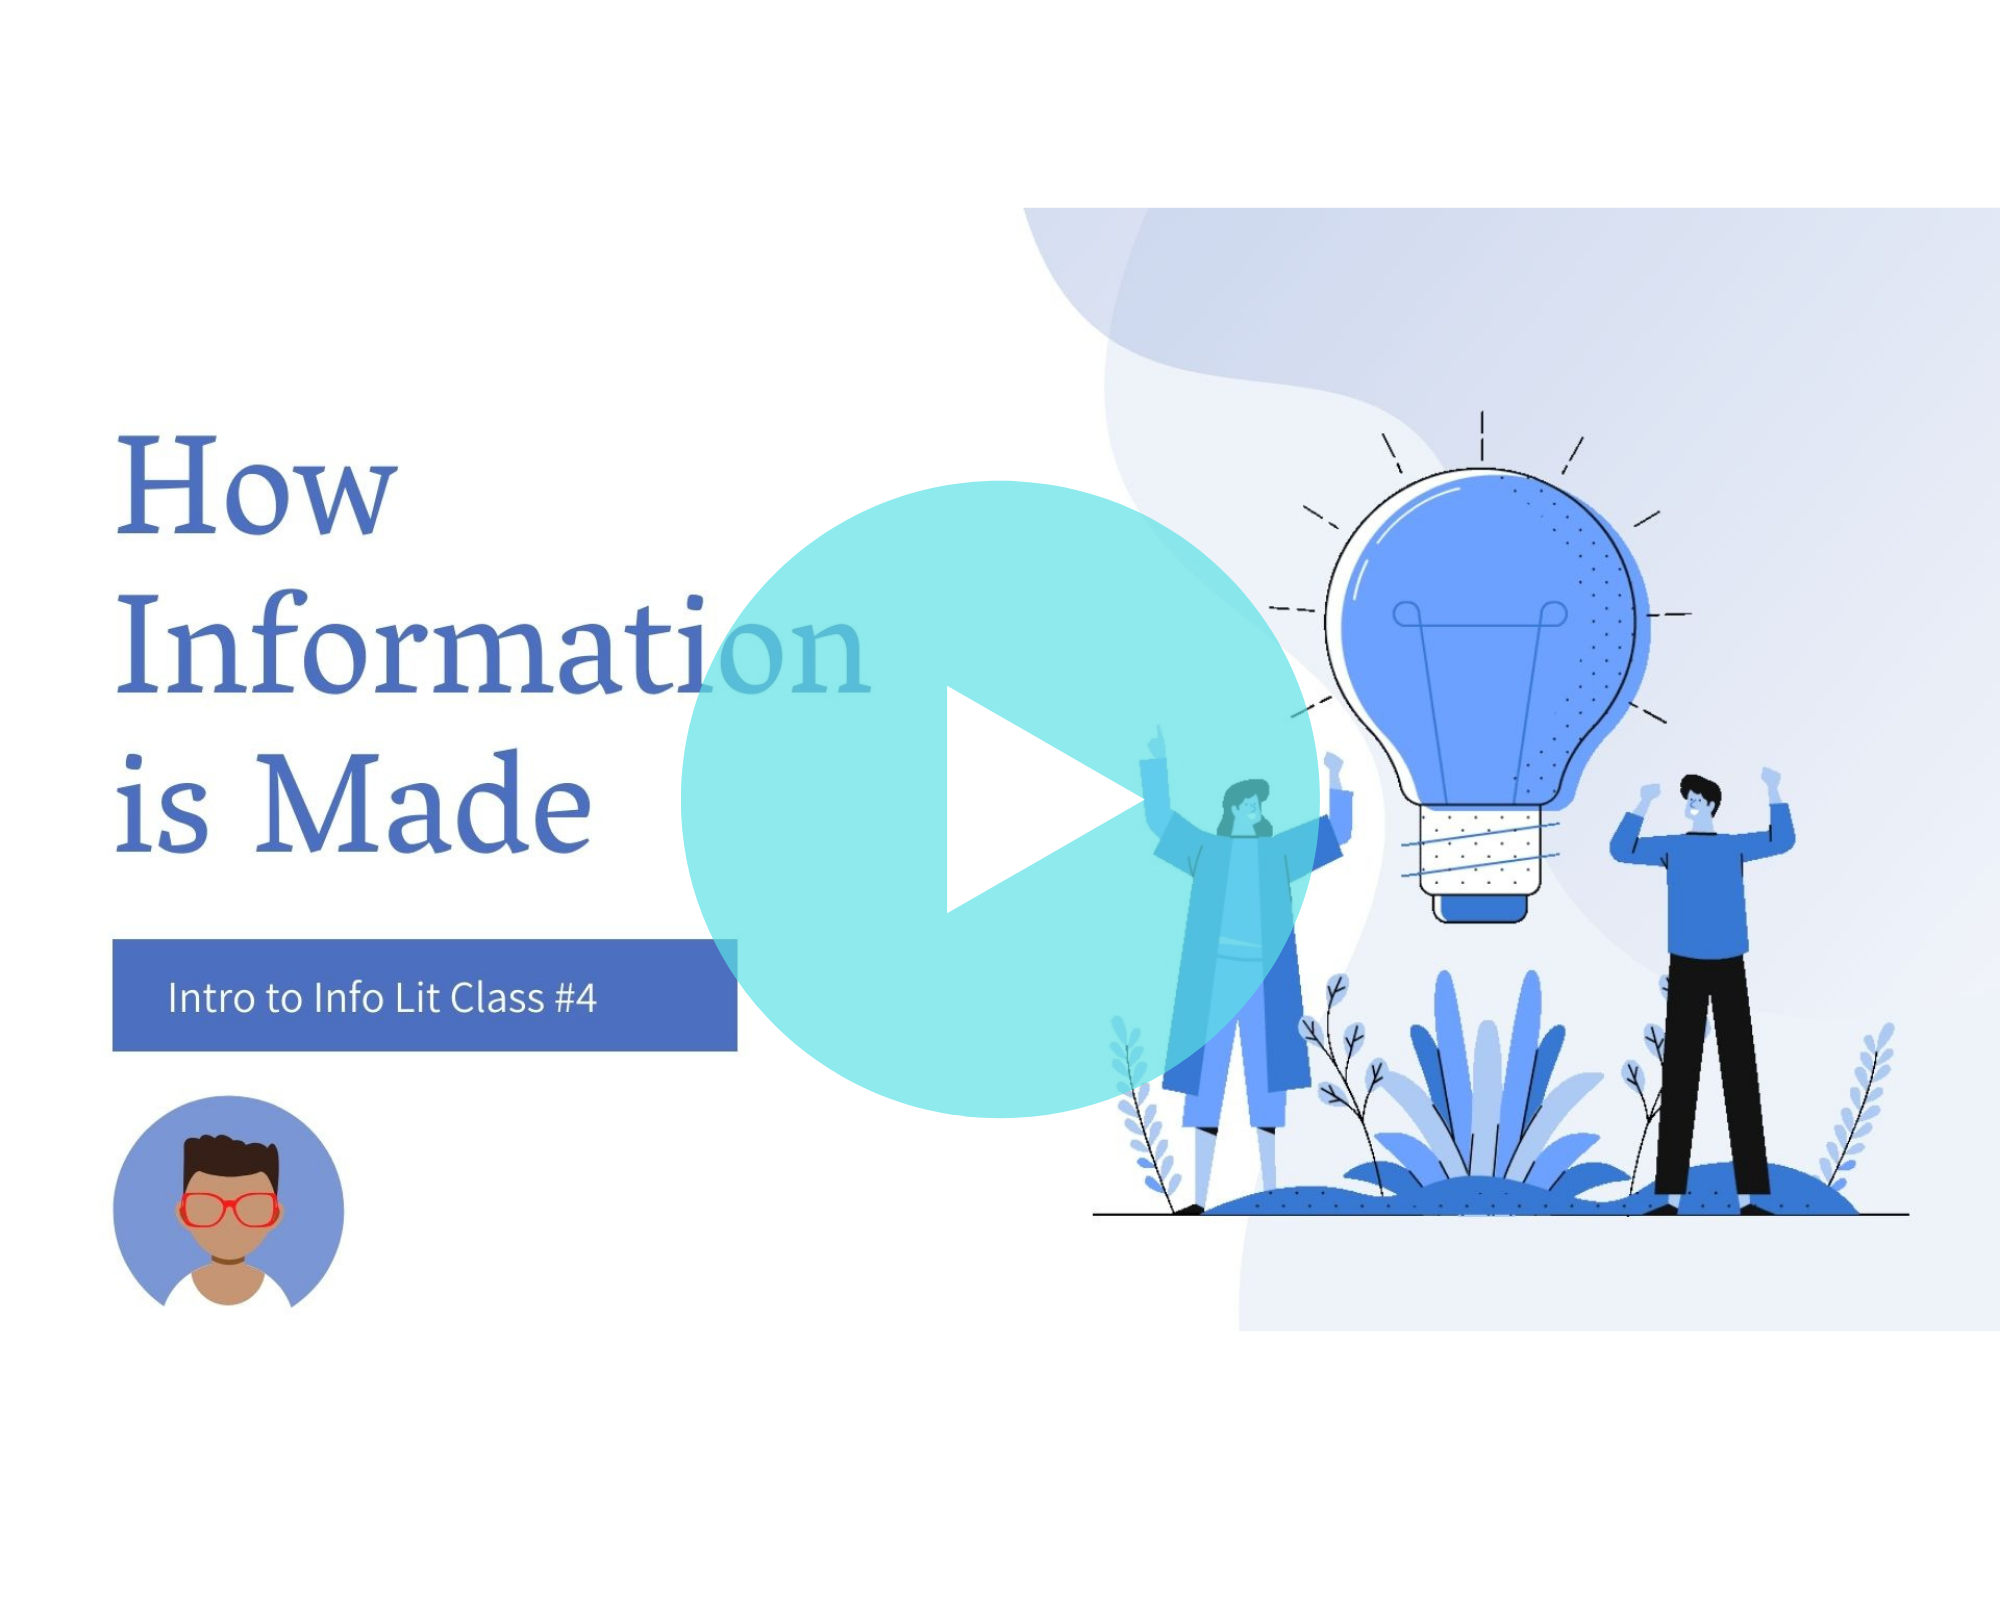 How Information is Made